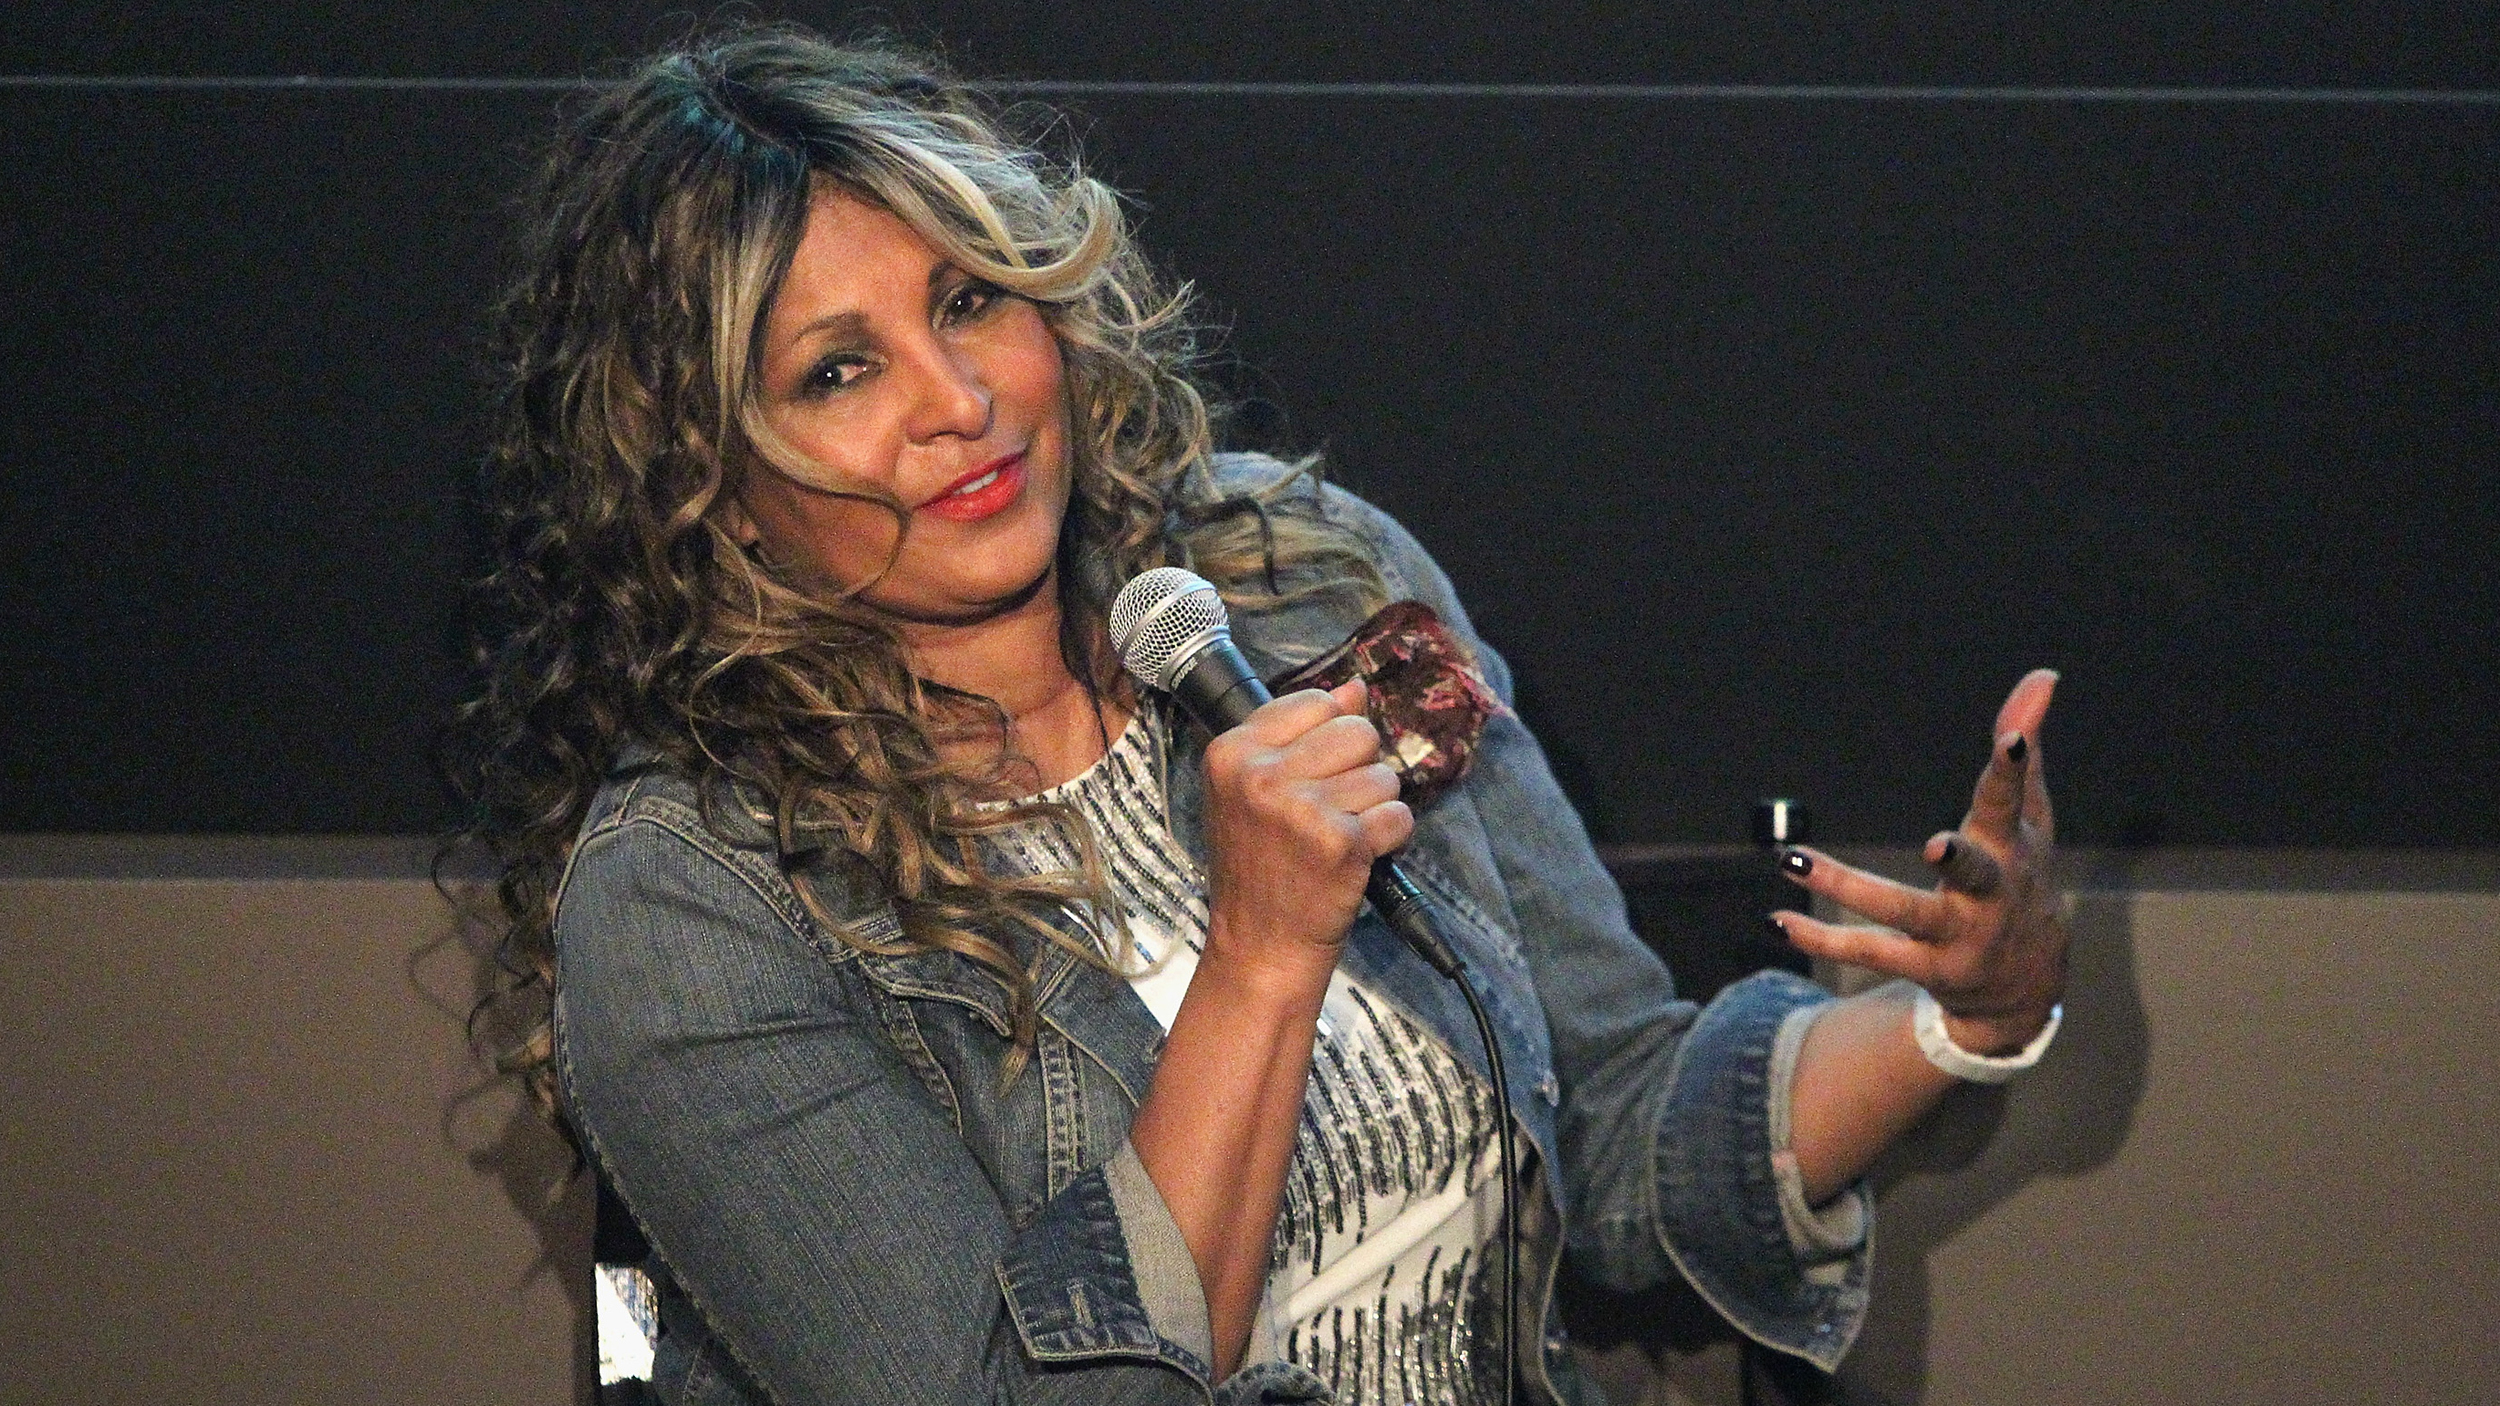 """Foxy, The Complete Pam Grier"" Film Series"